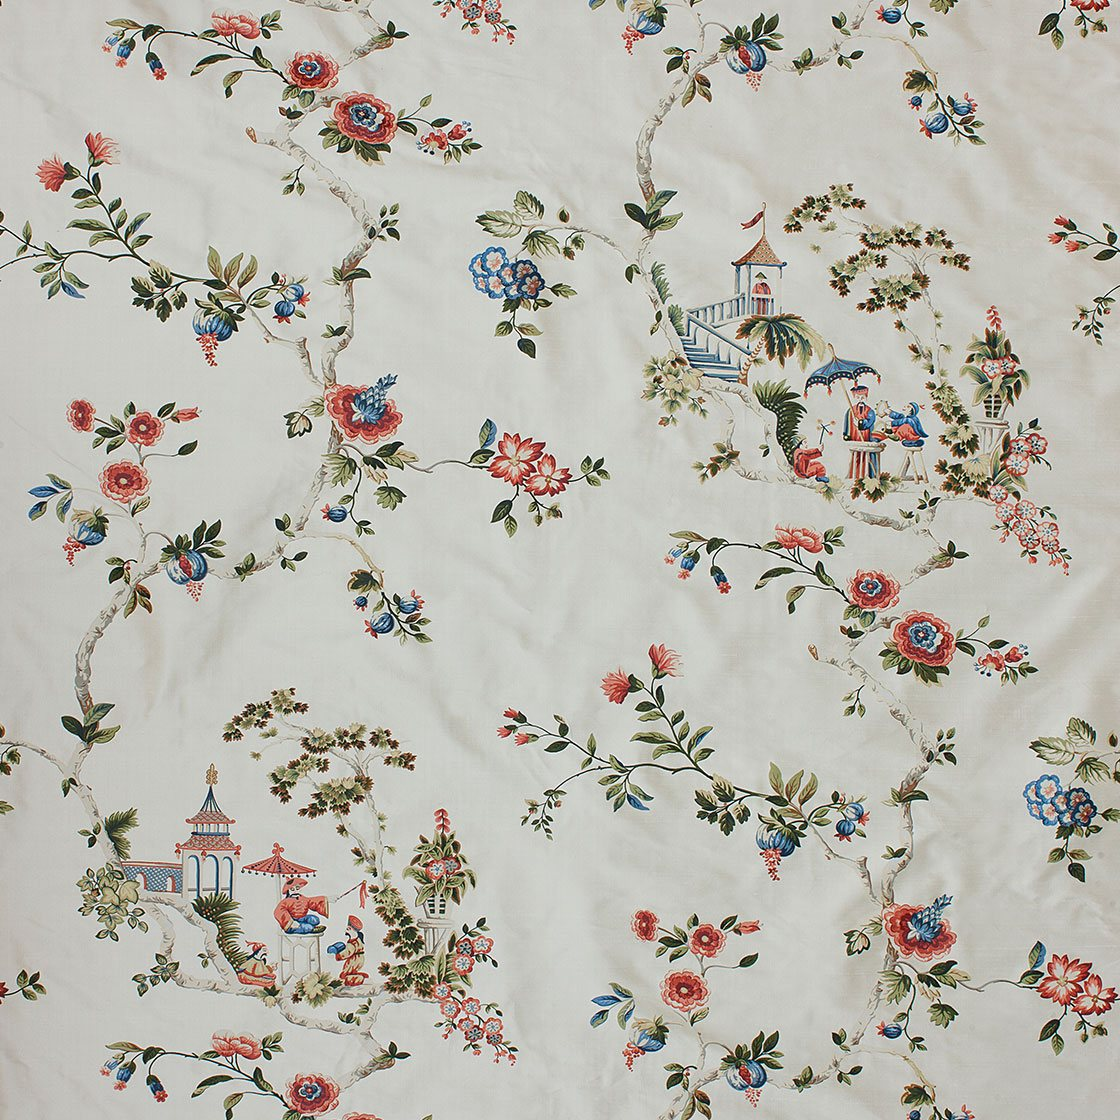 Cathay Printed Silk - Ivory Garden - Beaumont & Fletcher - Beaumont & Fletcher